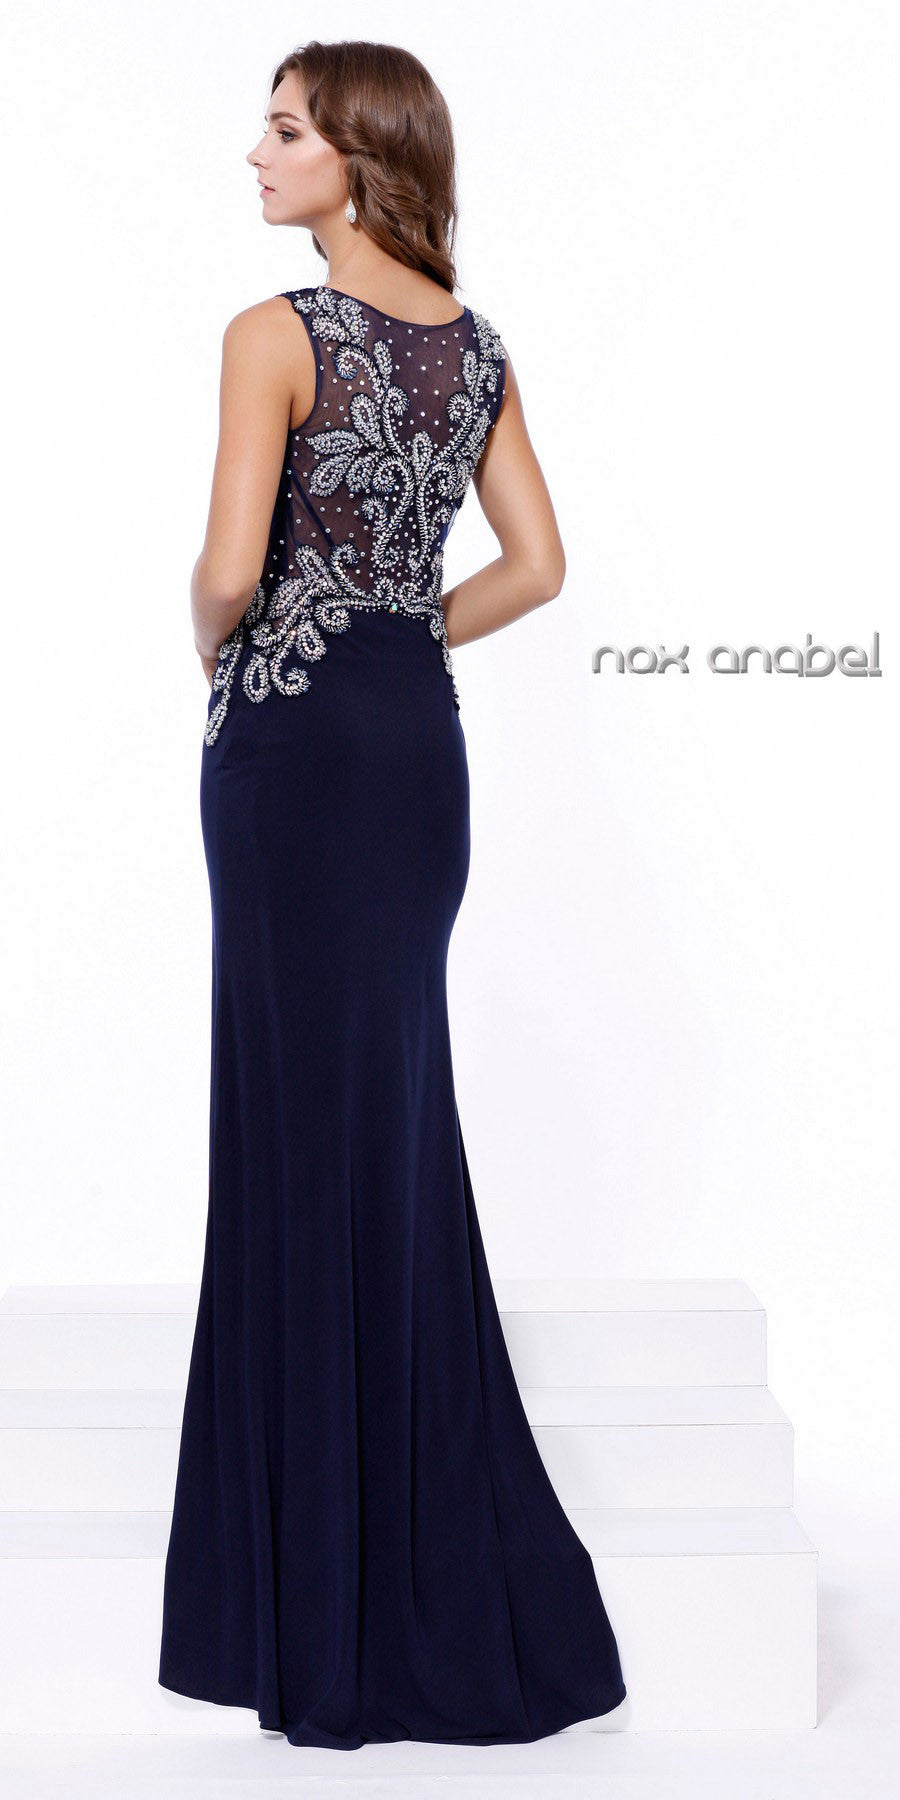 Embellished Top Fit and Flare Evening Gown with Train Navy Blue Back View